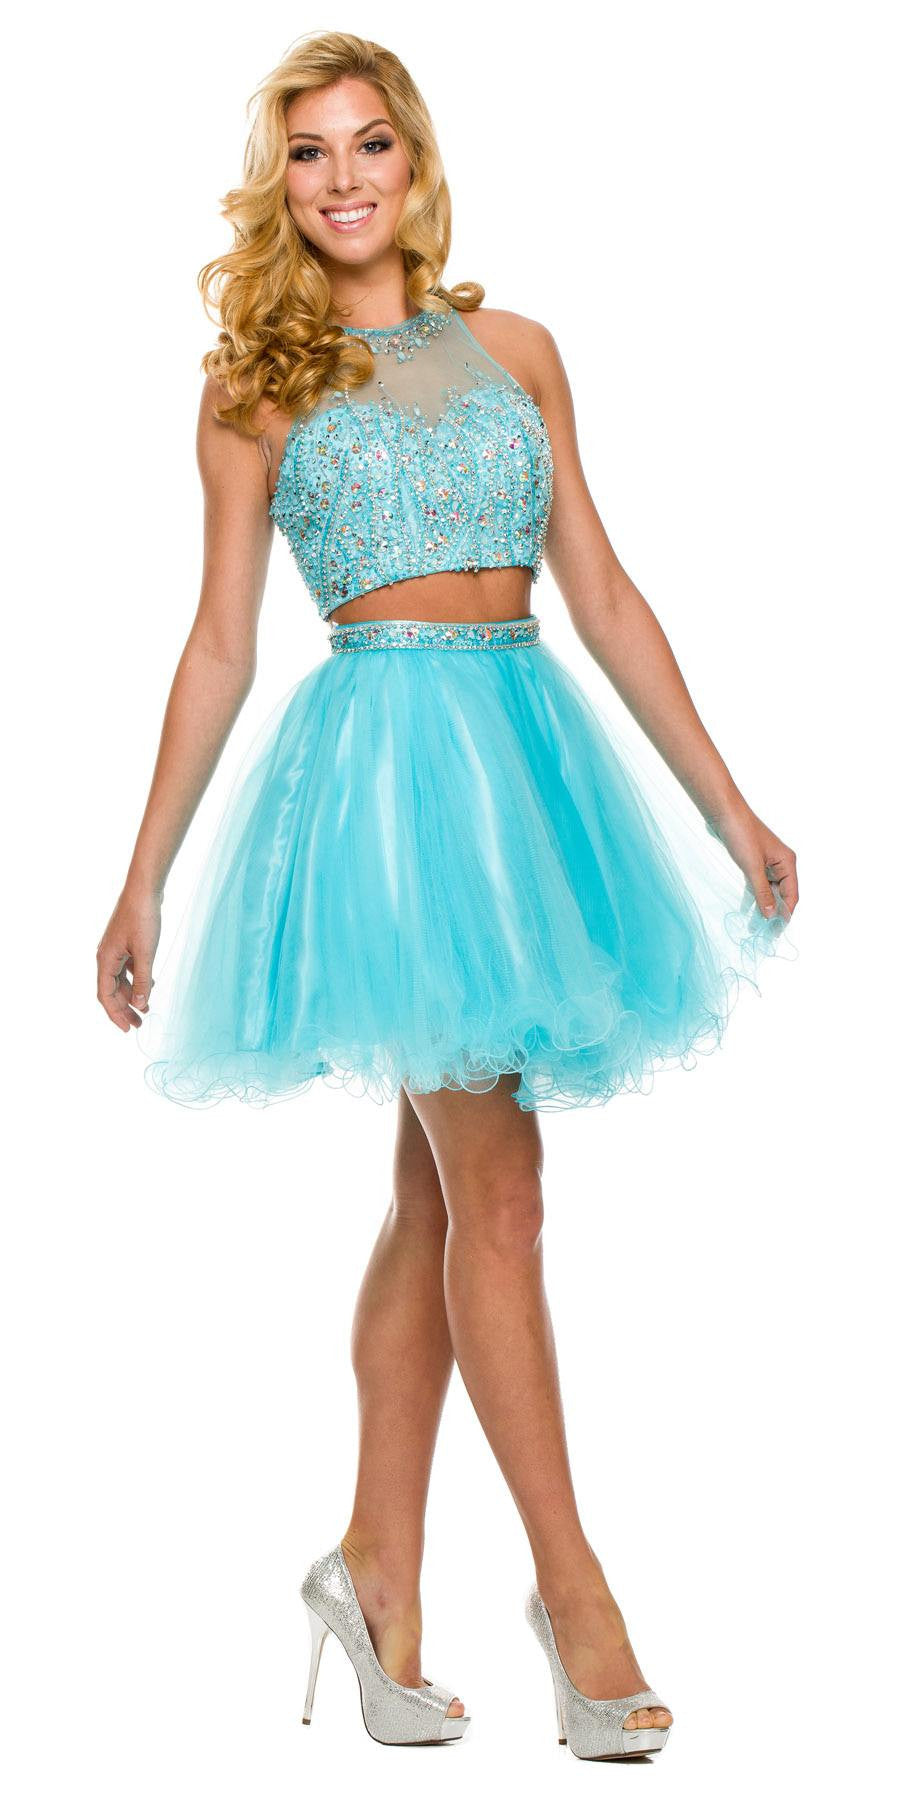 Short 2 Piece Prom Gown Coral Tulle Poofy High Neck Keyhole Back ...